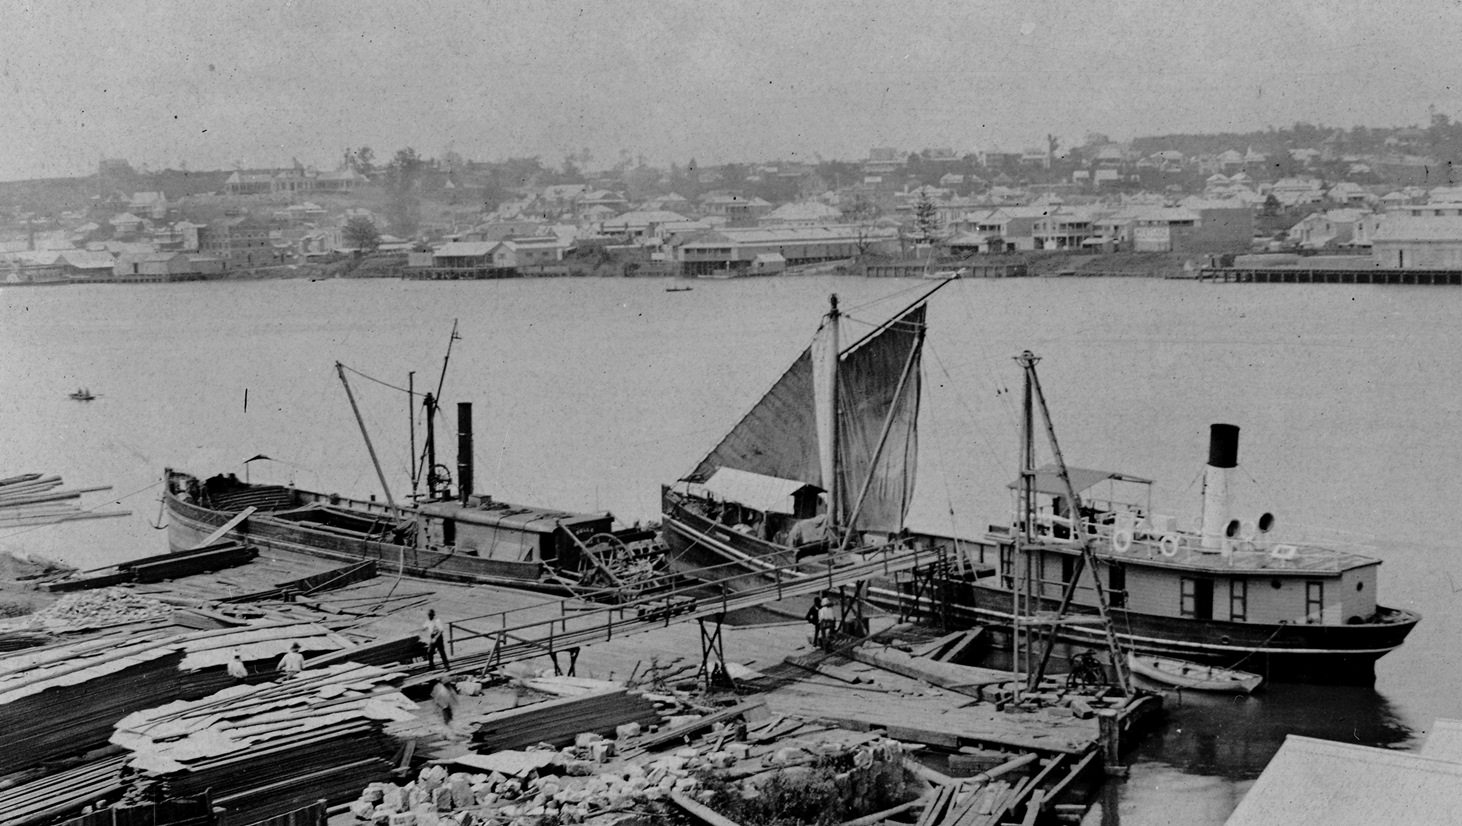 The Gneering (left) and the Tarshaw (right) berthed at Pettigrew's Wharf, downstream from Queen's Wharf, circa 1892. SLQ image 64740-2.